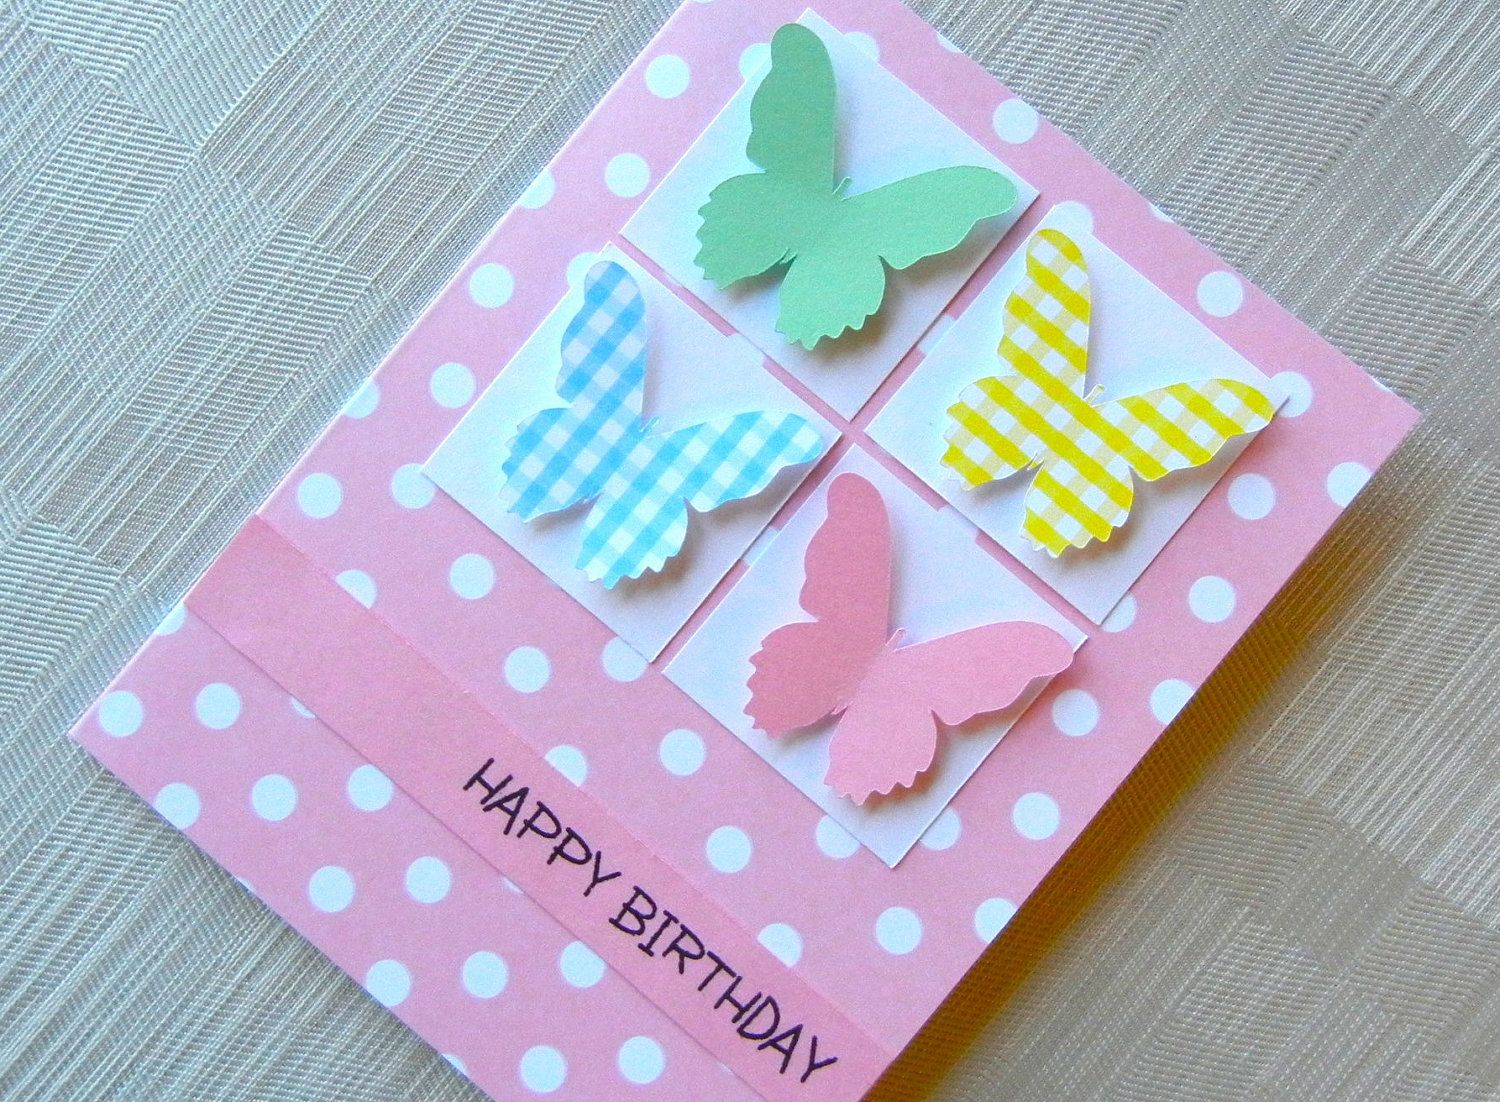 Pink hand made cards pinterest birthday card happy birthday kids pink hand made cards pinterest birthday card happy birthday kids birthday card by keylimecards kristyandbryce Images